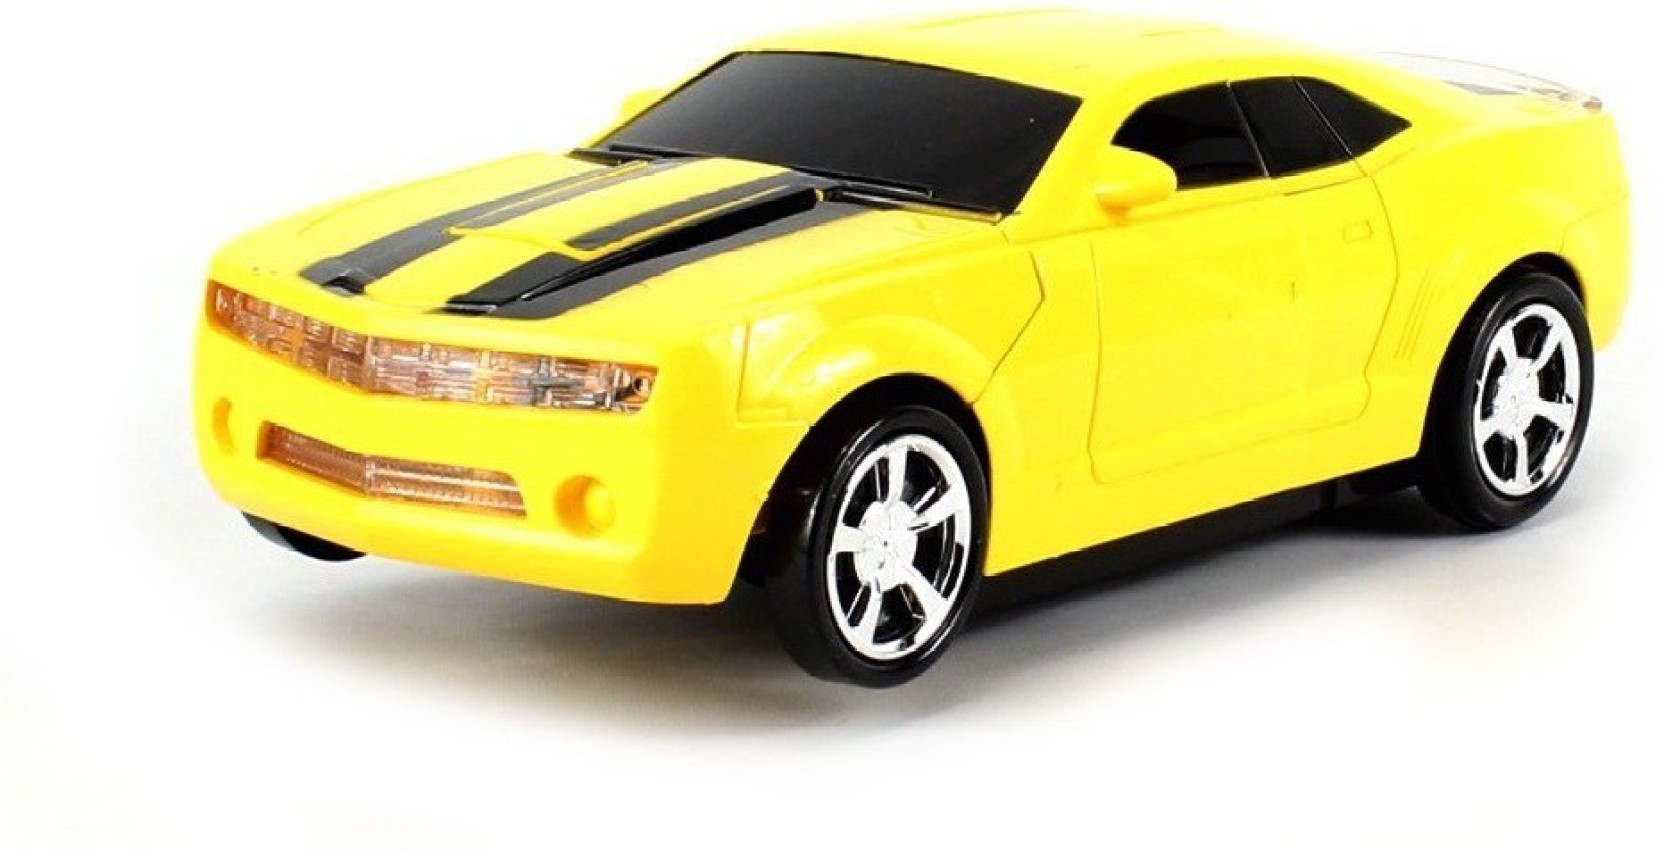 Transformers Car Light Up Bump And Go LED Yellow Generic Bumble Bee Toy Sound